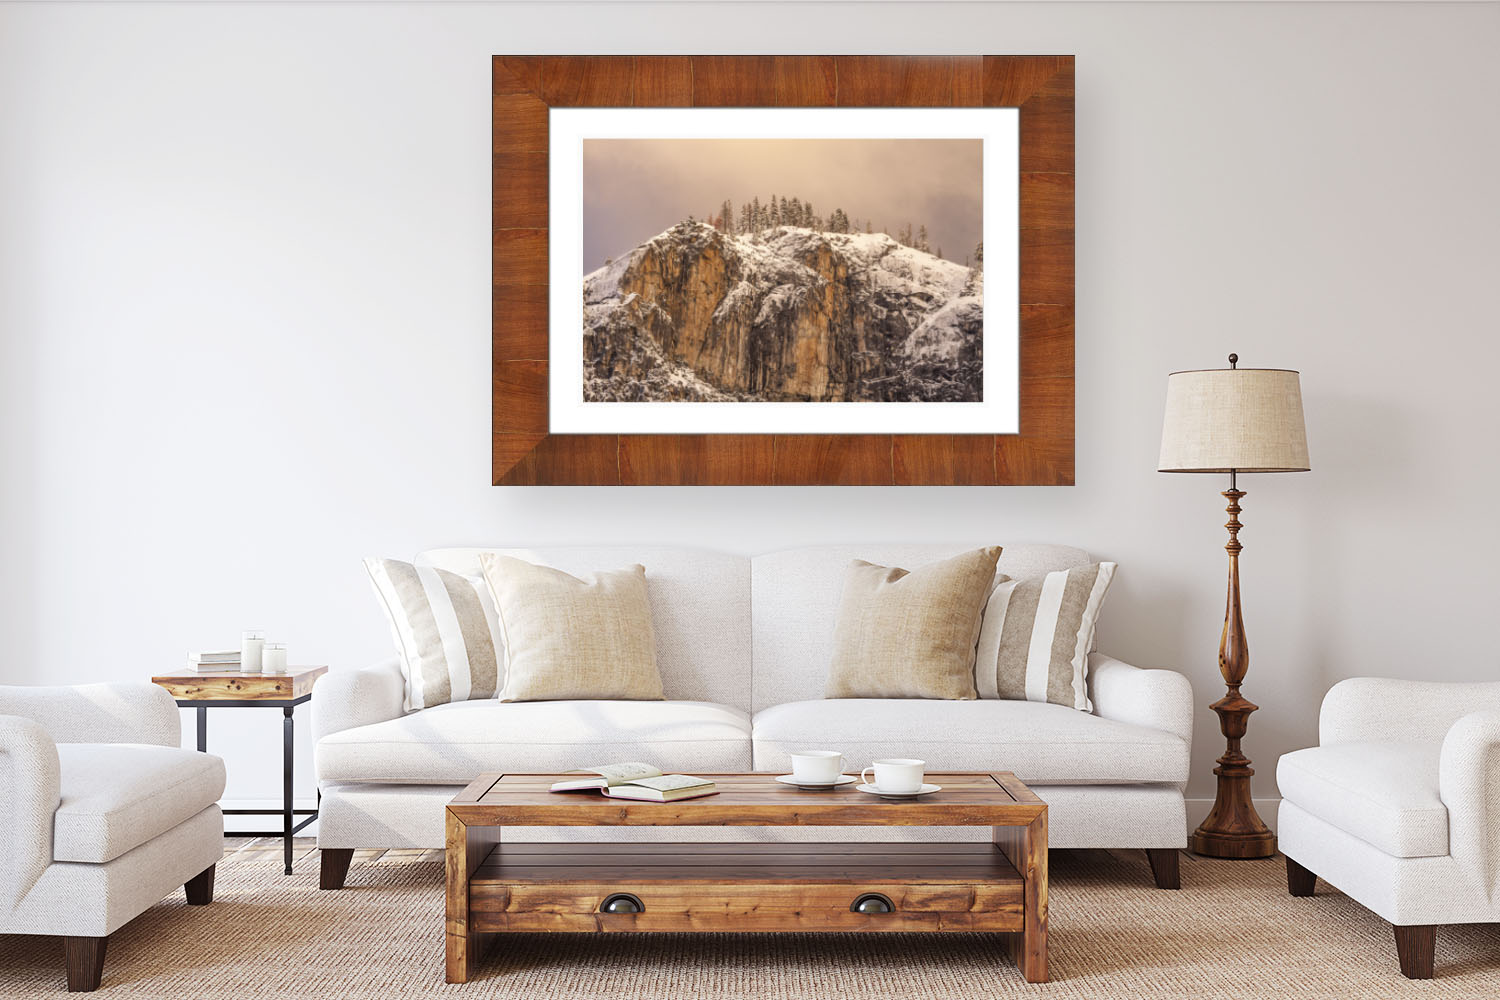 High end framed landscape photography